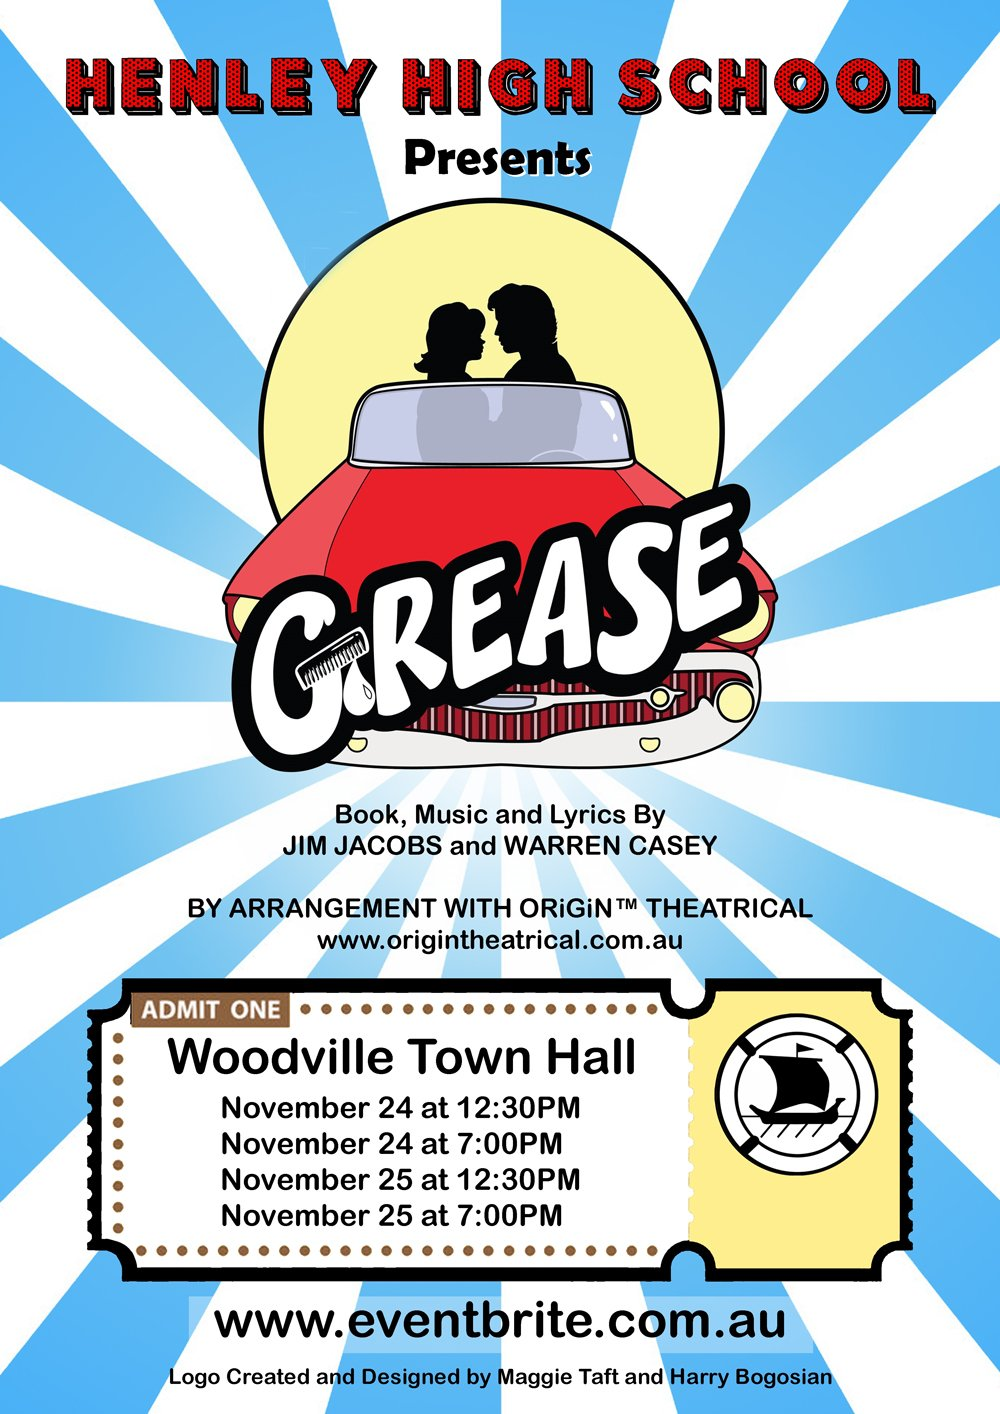 henley-high-school-grease-poster